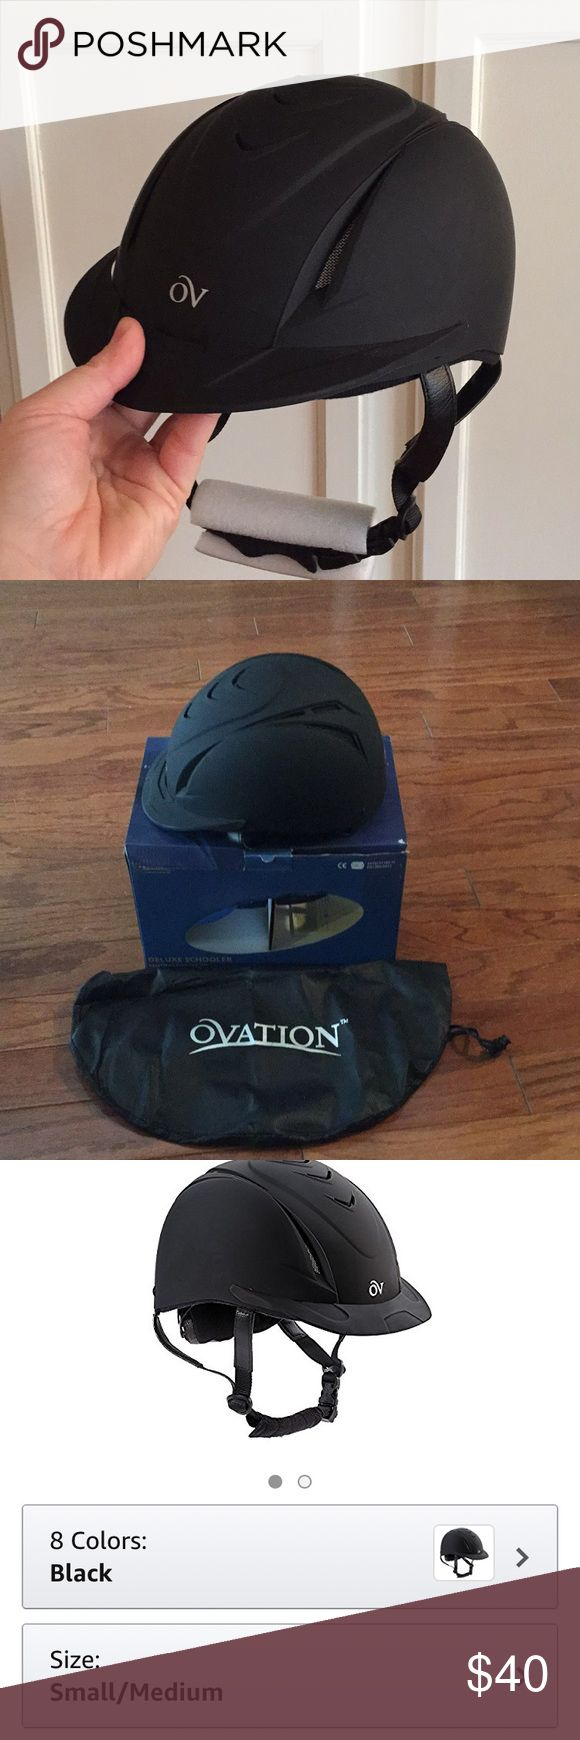 Ovation Deluxe Schooler Riding Helmet🌻 🌻Brand new in box! Never used. We purchased the wrong size and then waited too long to return.  Thanks! ovation Other